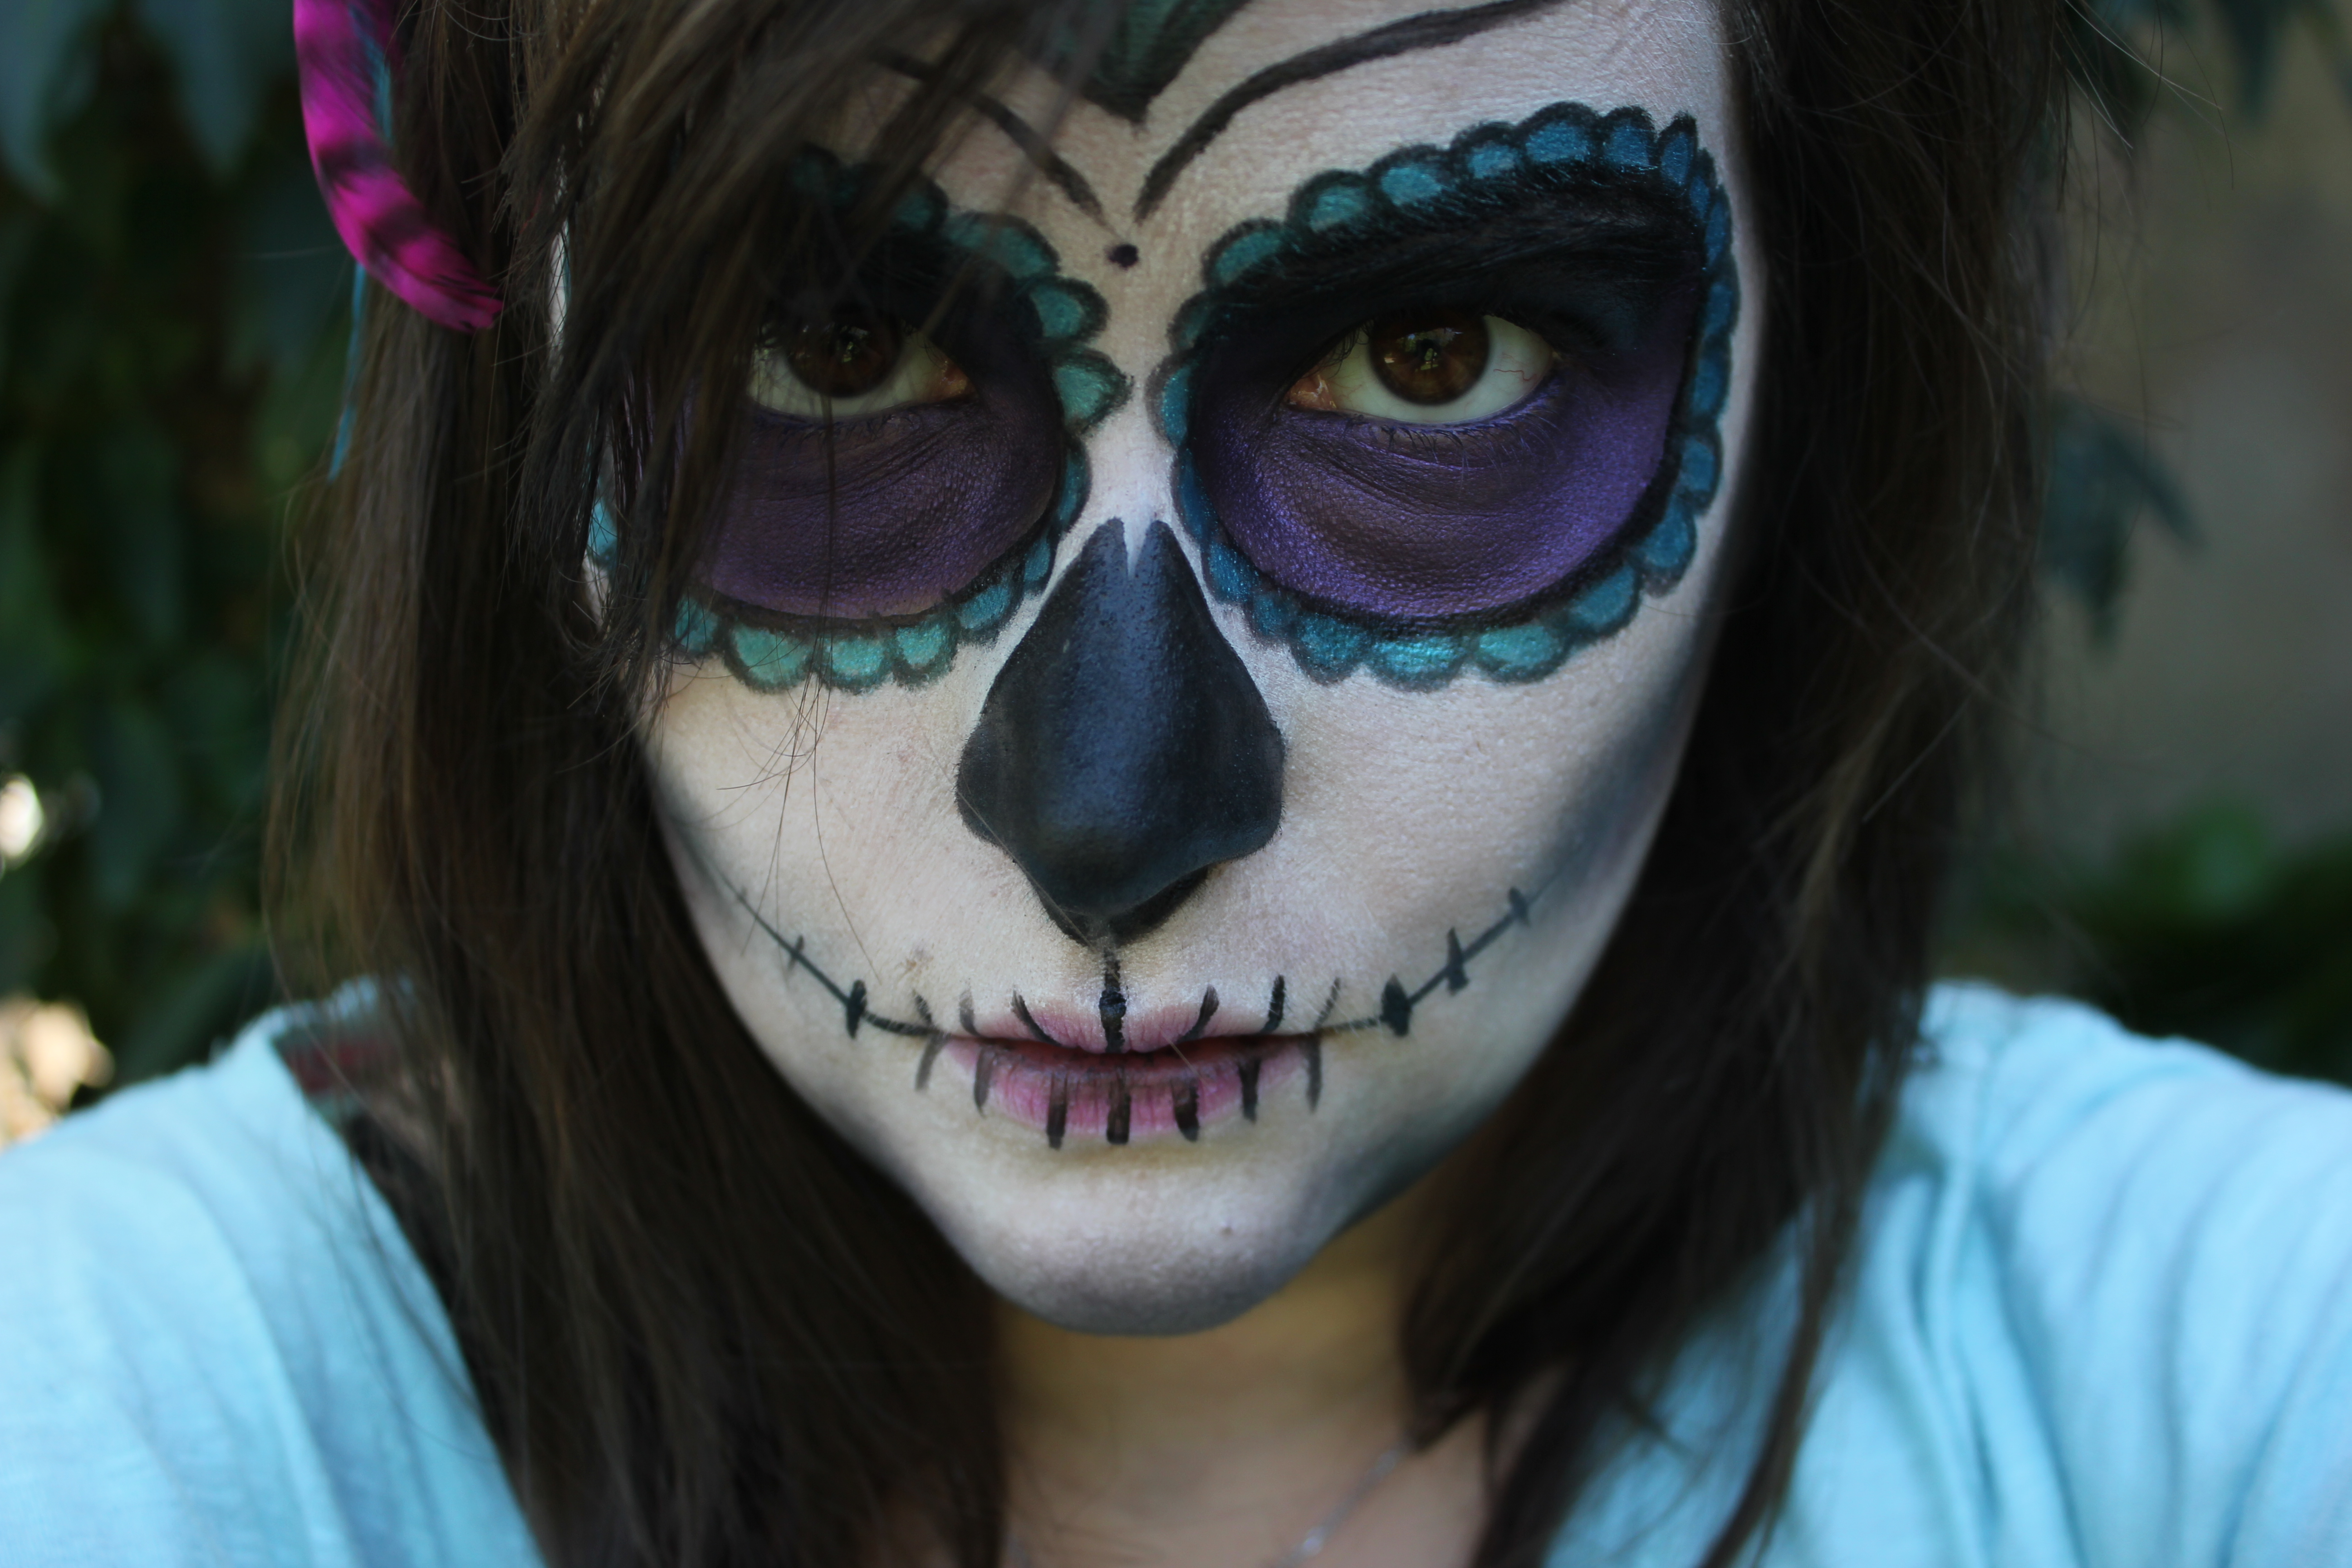 Maquillage facile pour Halloween  Magicmaman